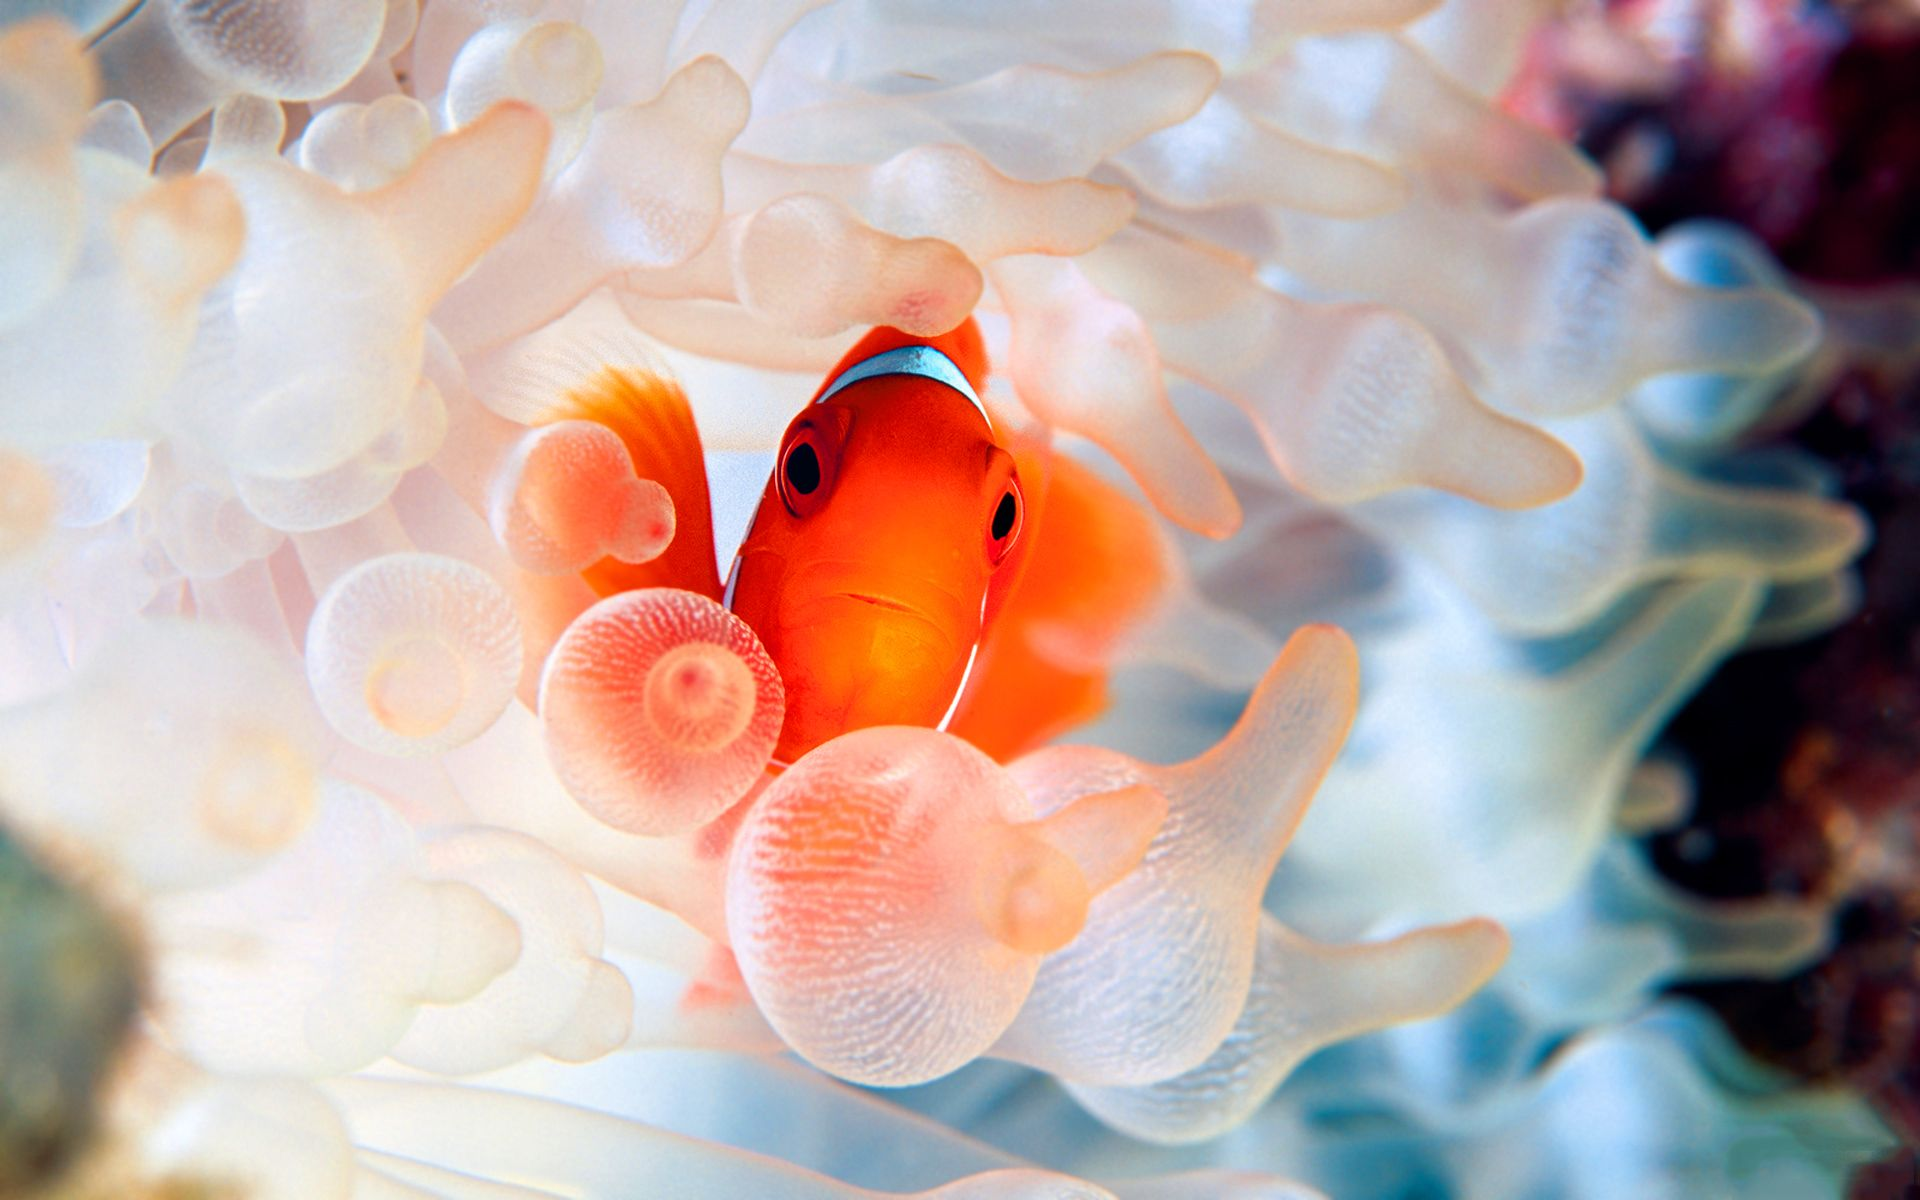 The 27 best images about Clownfish on Pinterest | Finding nemo ...